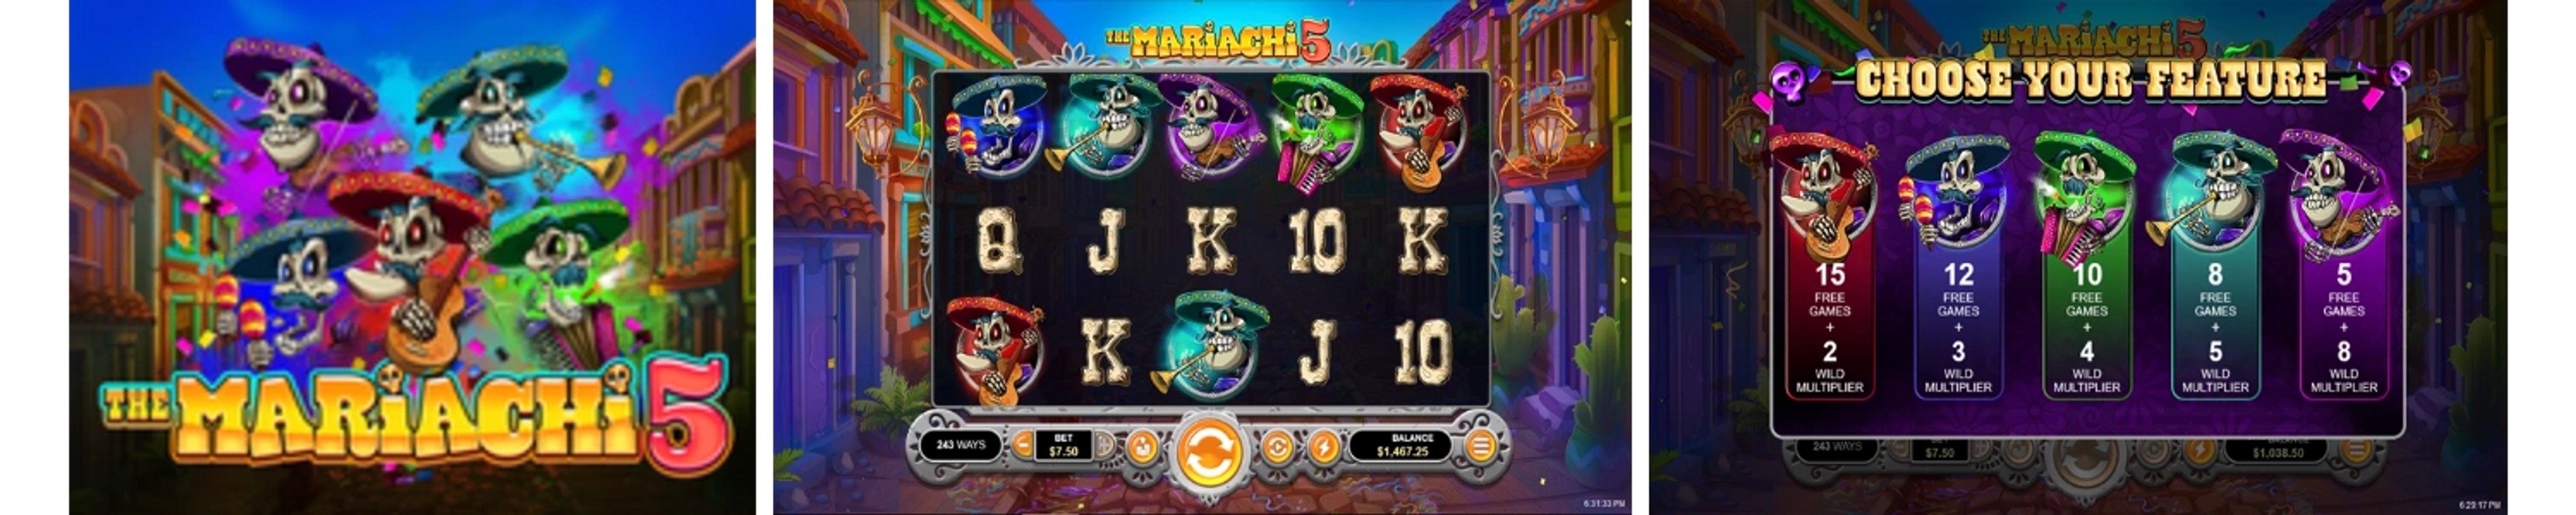 The Mariachi 5 Online Video Slot Review